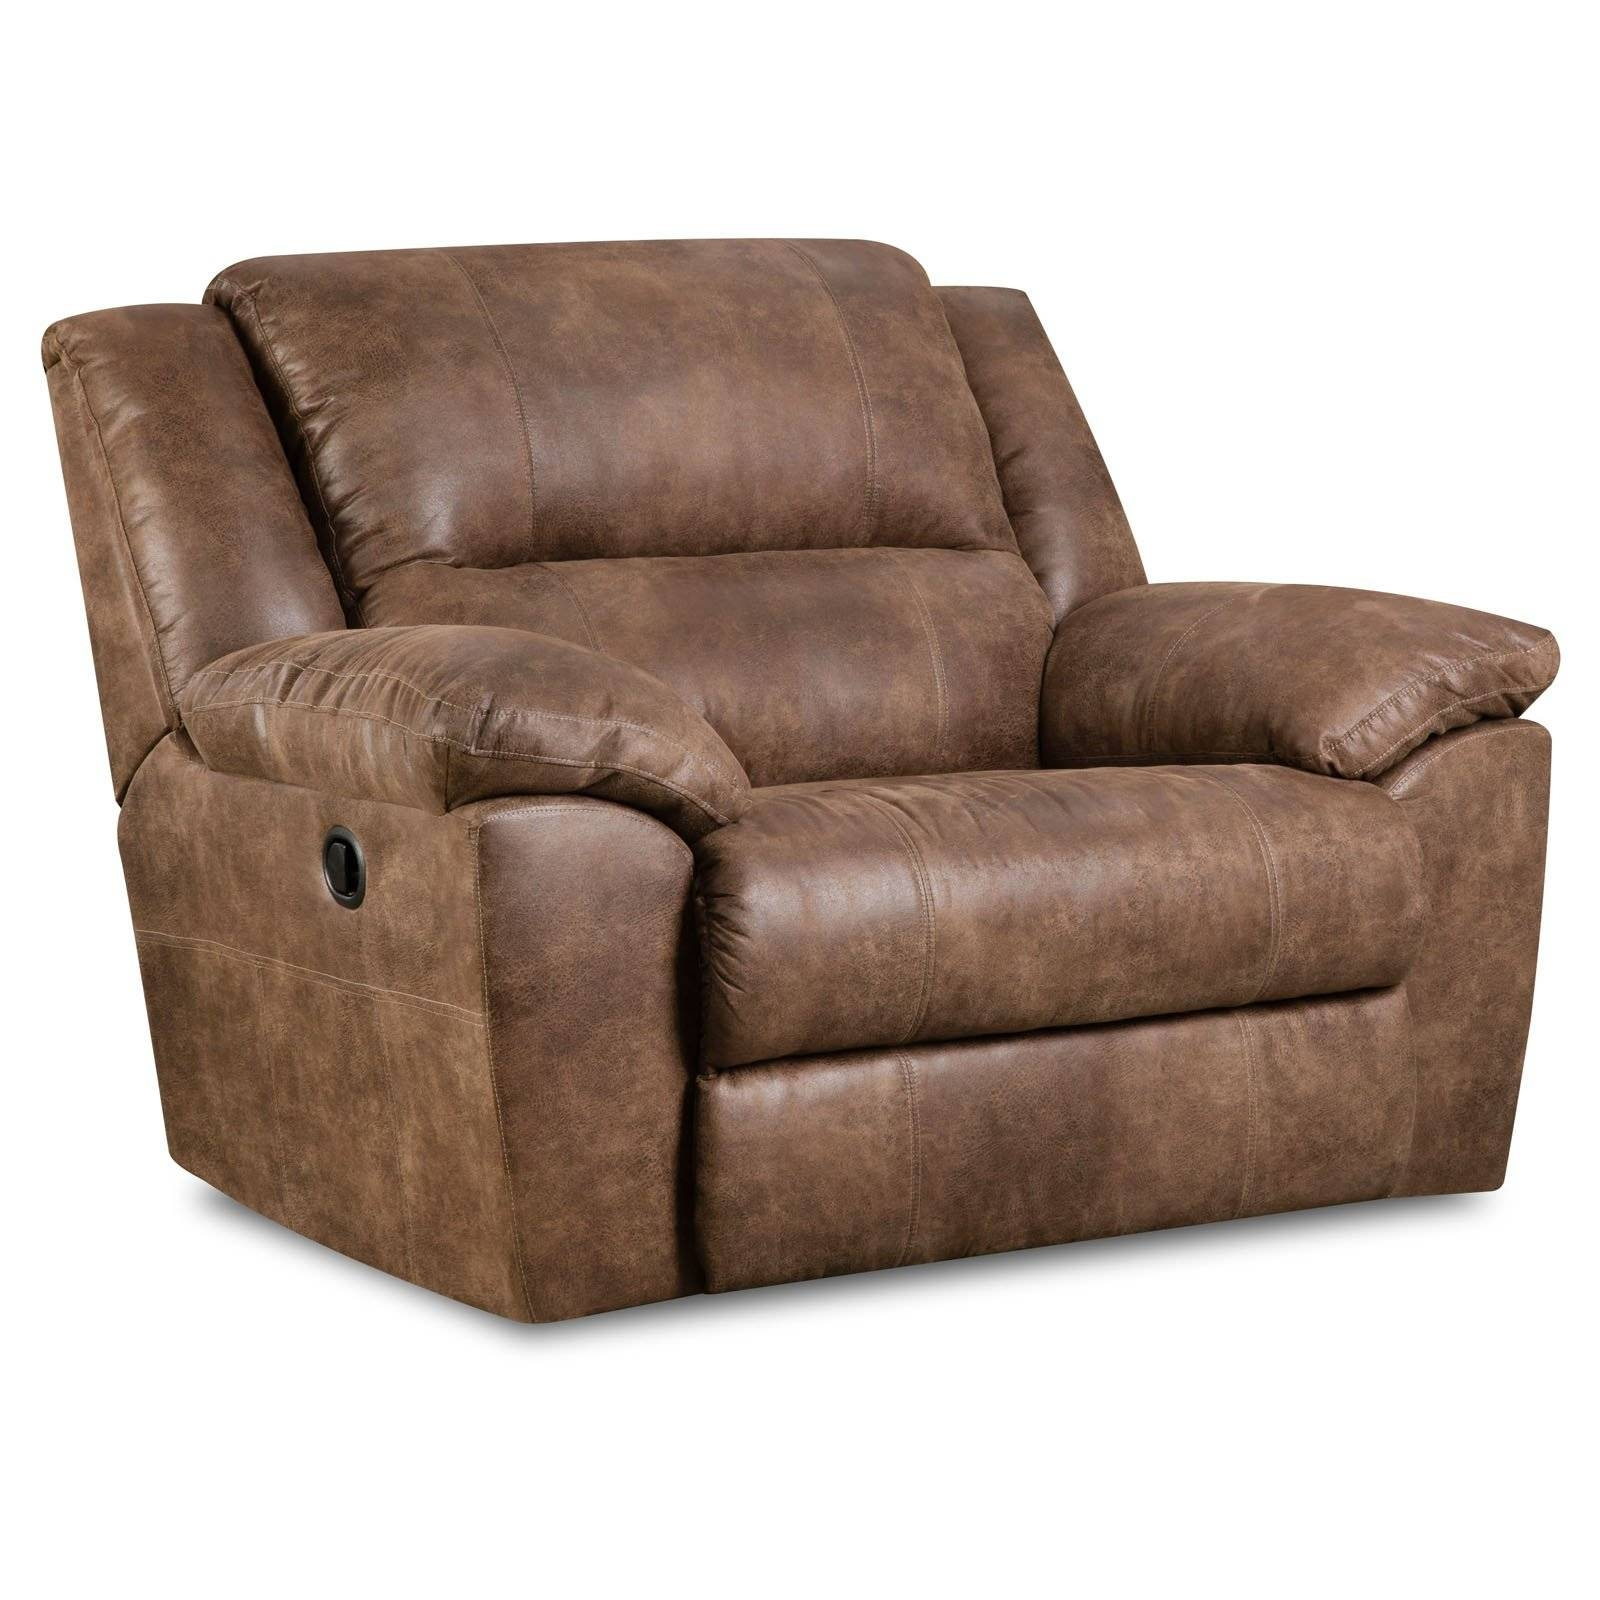 Furniture: Excellent Simmons Upholstery Sofa For Comfortable pertaining to Simmons Microfiber Sofas (Image 9 of 15)